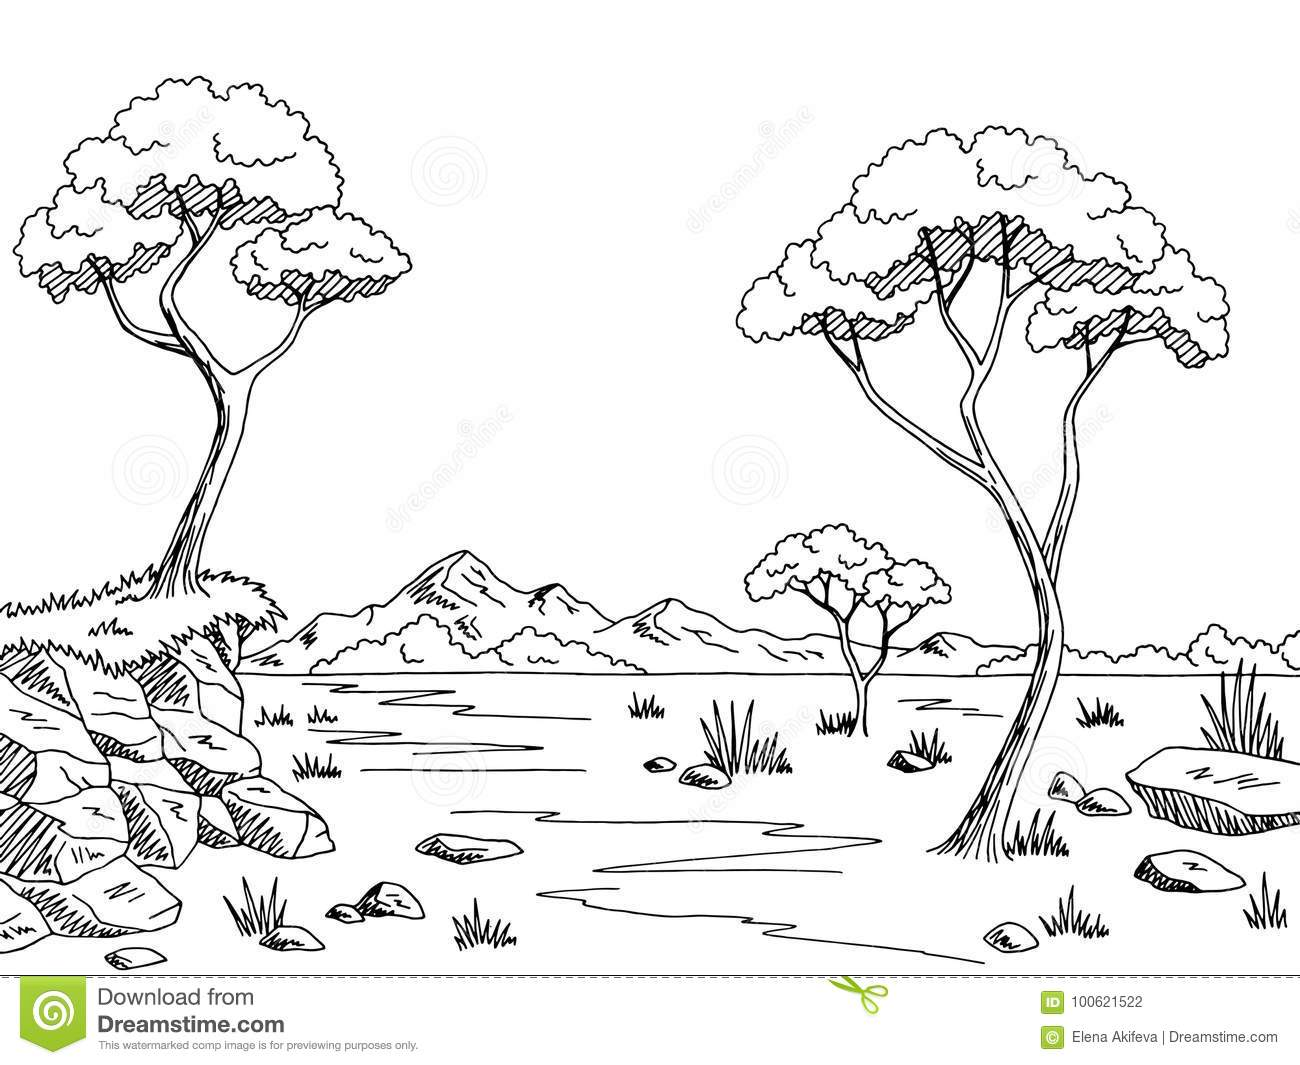 Savannah Graphic Black White Landscape Sketch Illustration